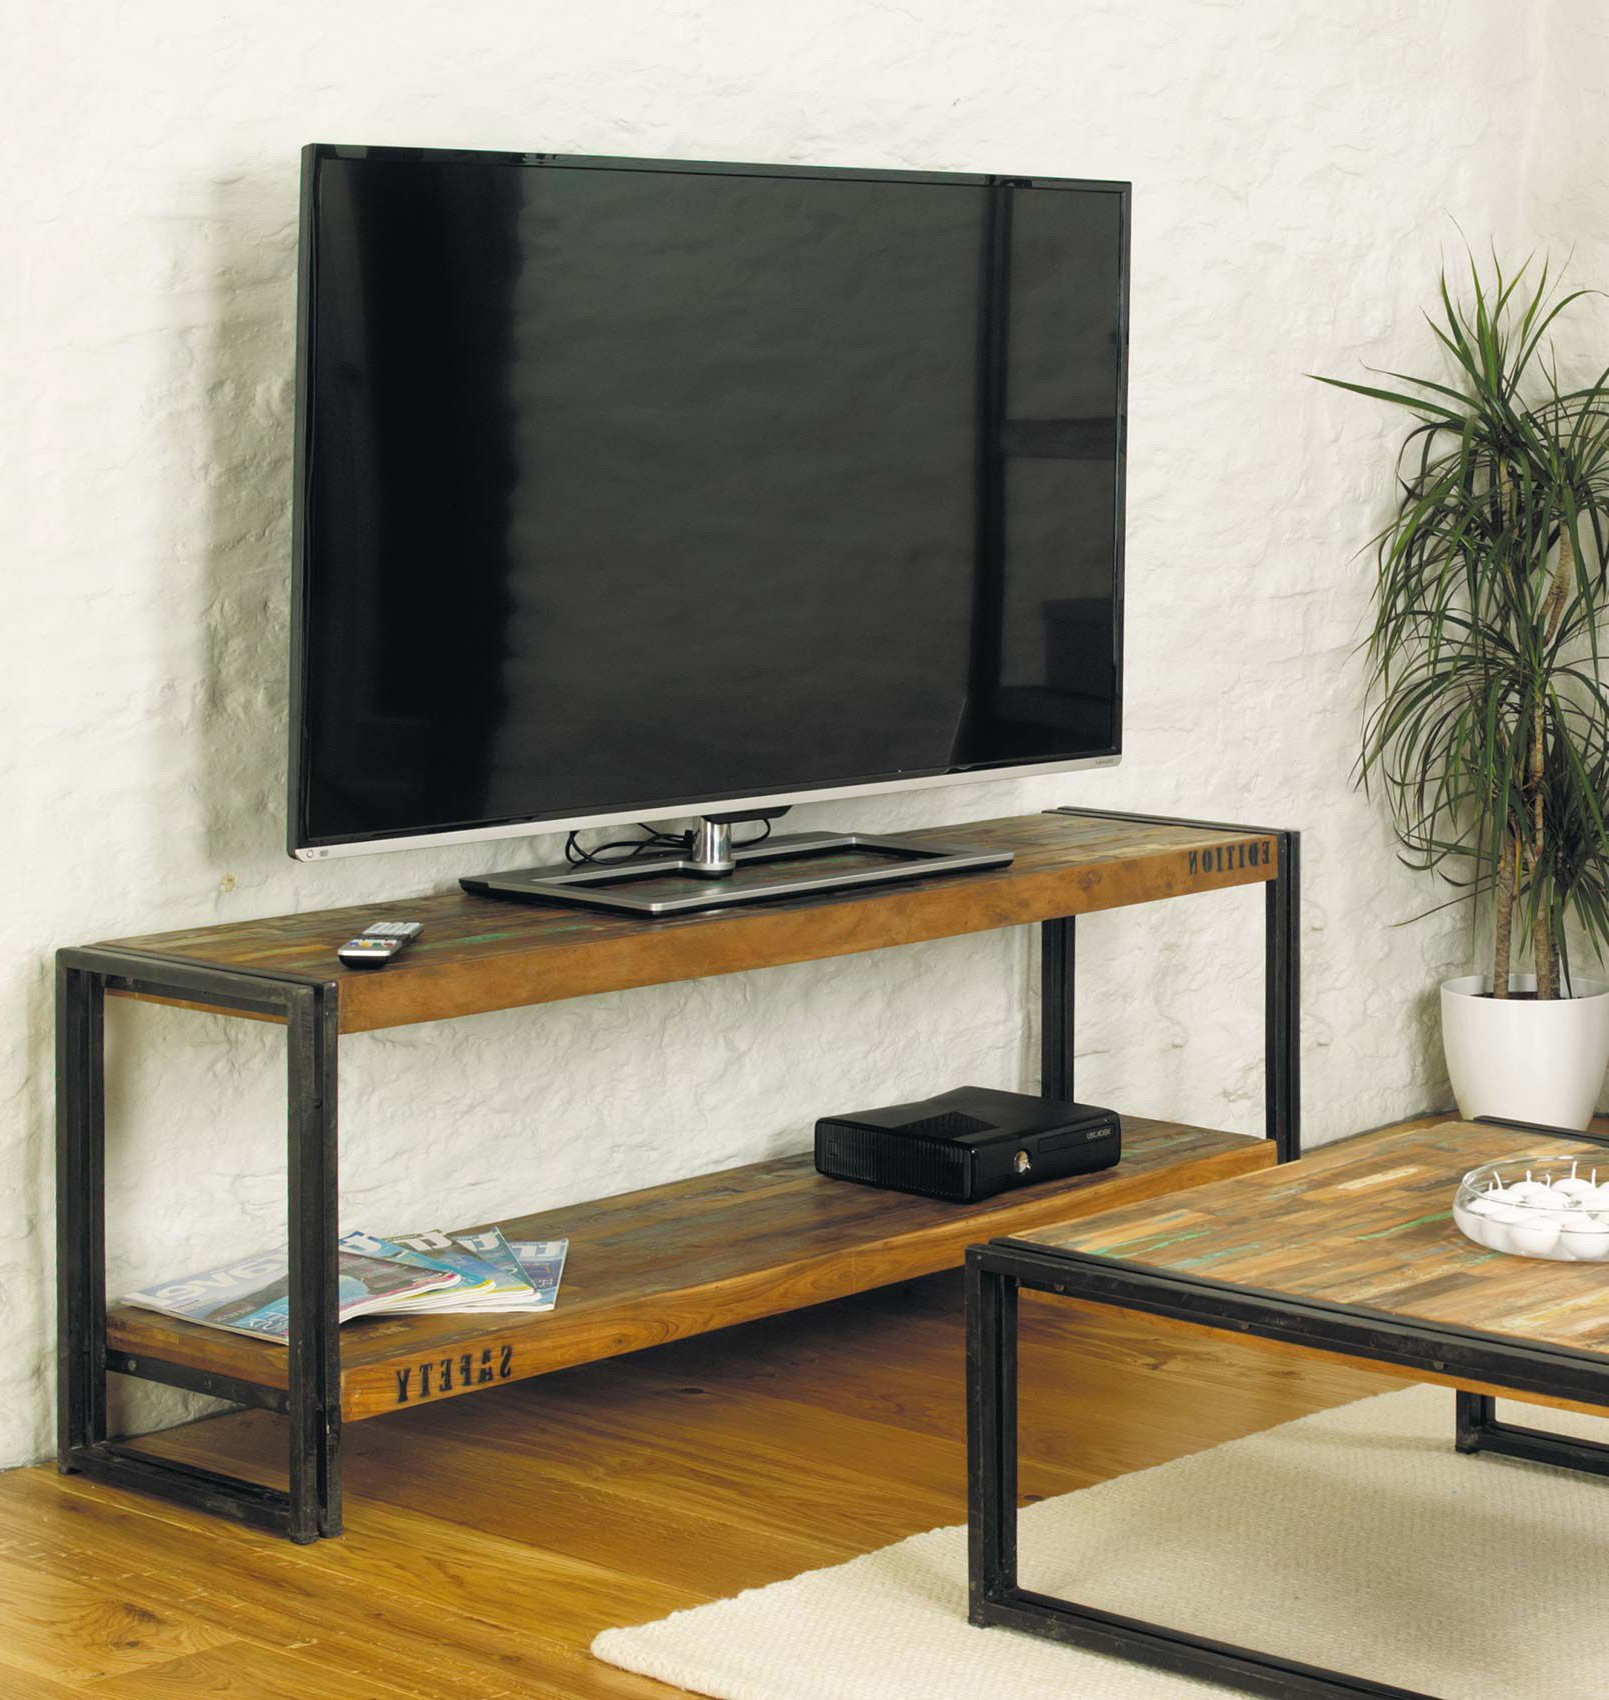 Tv Console Intended For Industrial Metal Tv Stands (View 16 of 20)